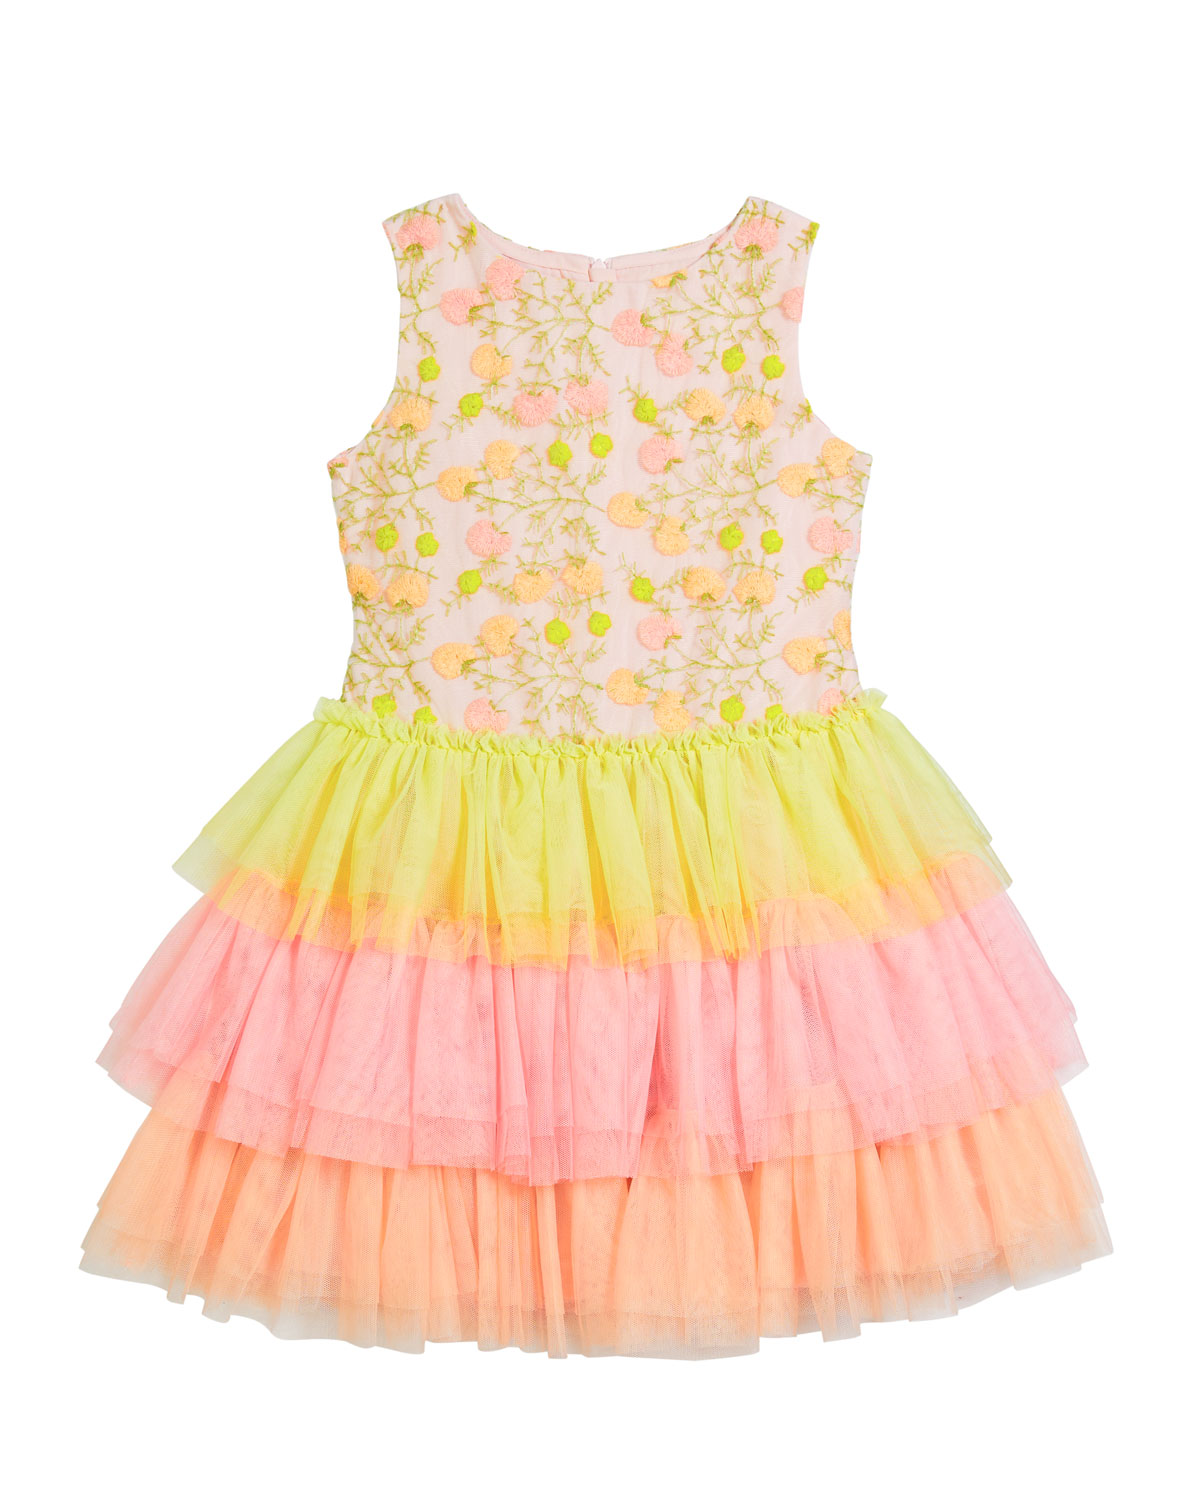 Charabia Dresses GIRL'S MULTICOLOR FLORAL LACE EMBROIDERED TIERED TULLE DRESS